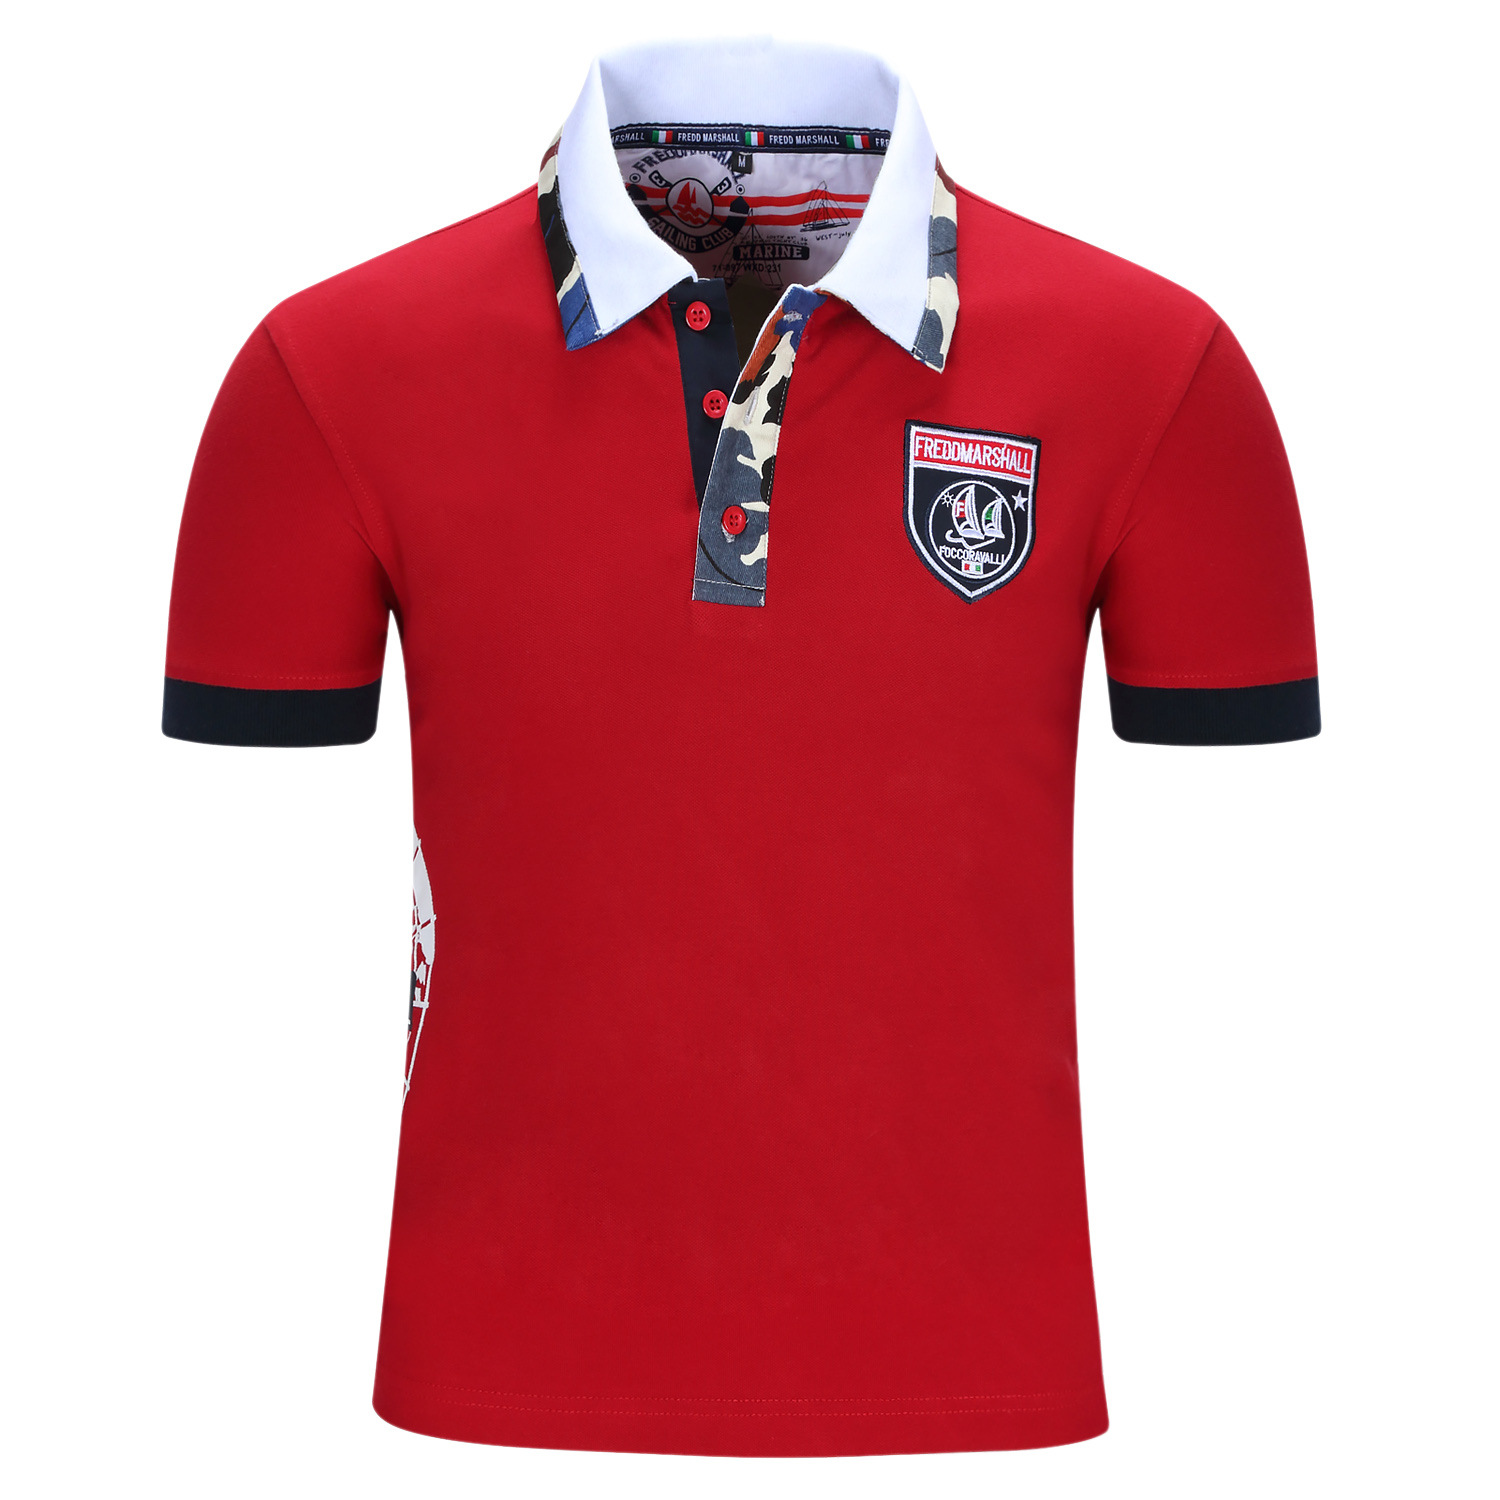 Designer Polo Shirt Men's Fredd Marshall Summer Cotton Mens Casual Polo Shirt Blue Red Short Sleeve Cool Name Brand N18